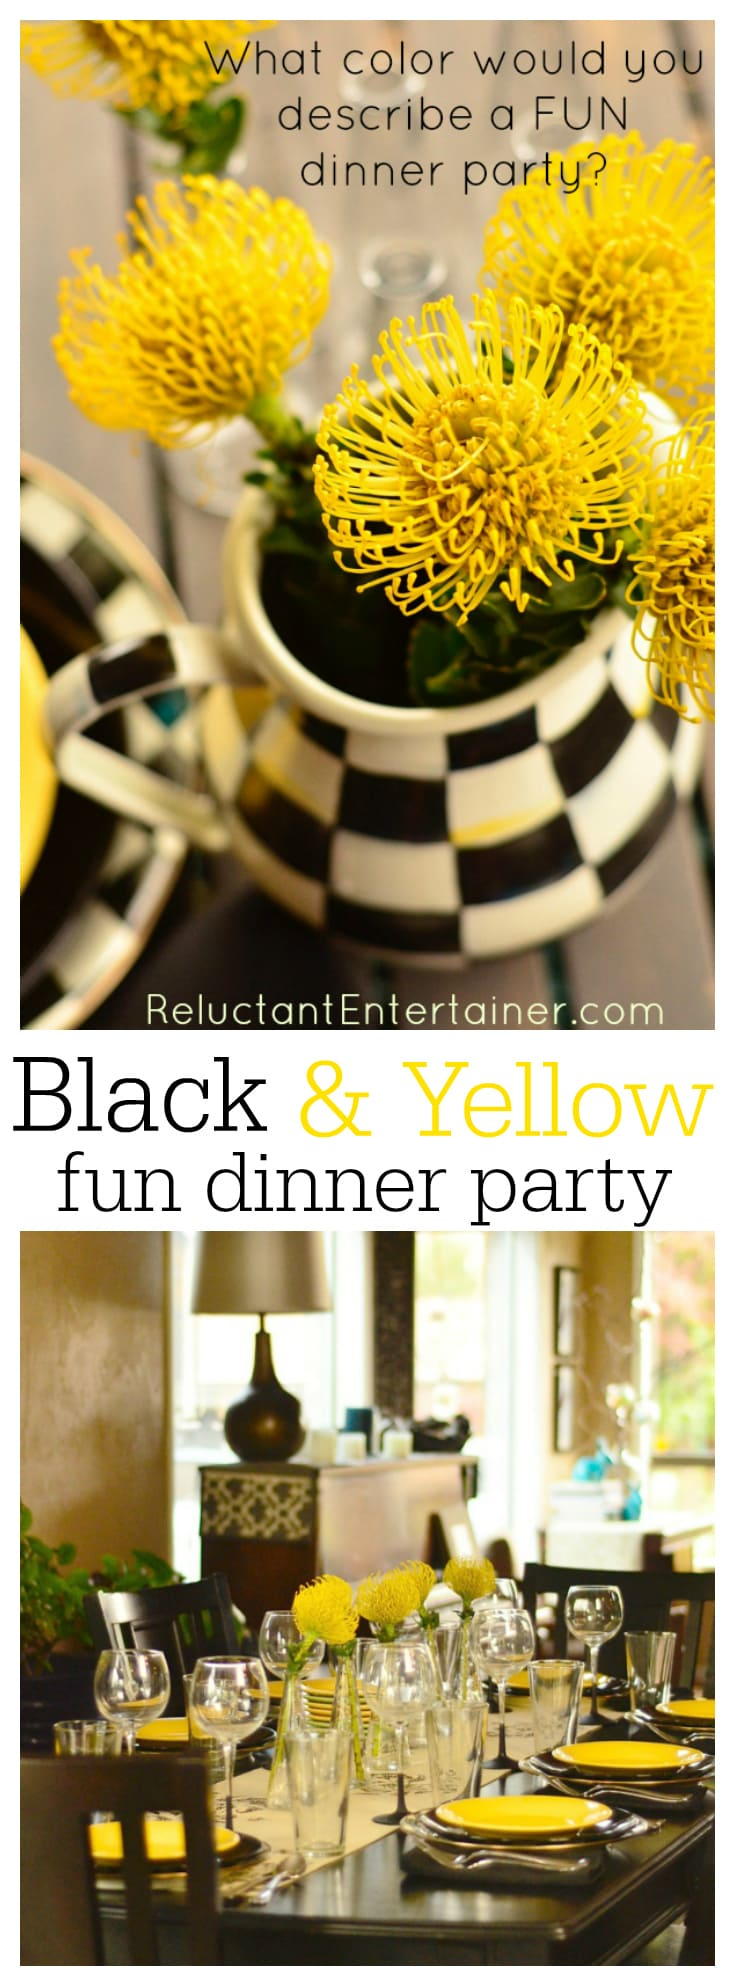 What Color Would You Describe a Fun Dinner Party? We love the color combination of yellow and black!